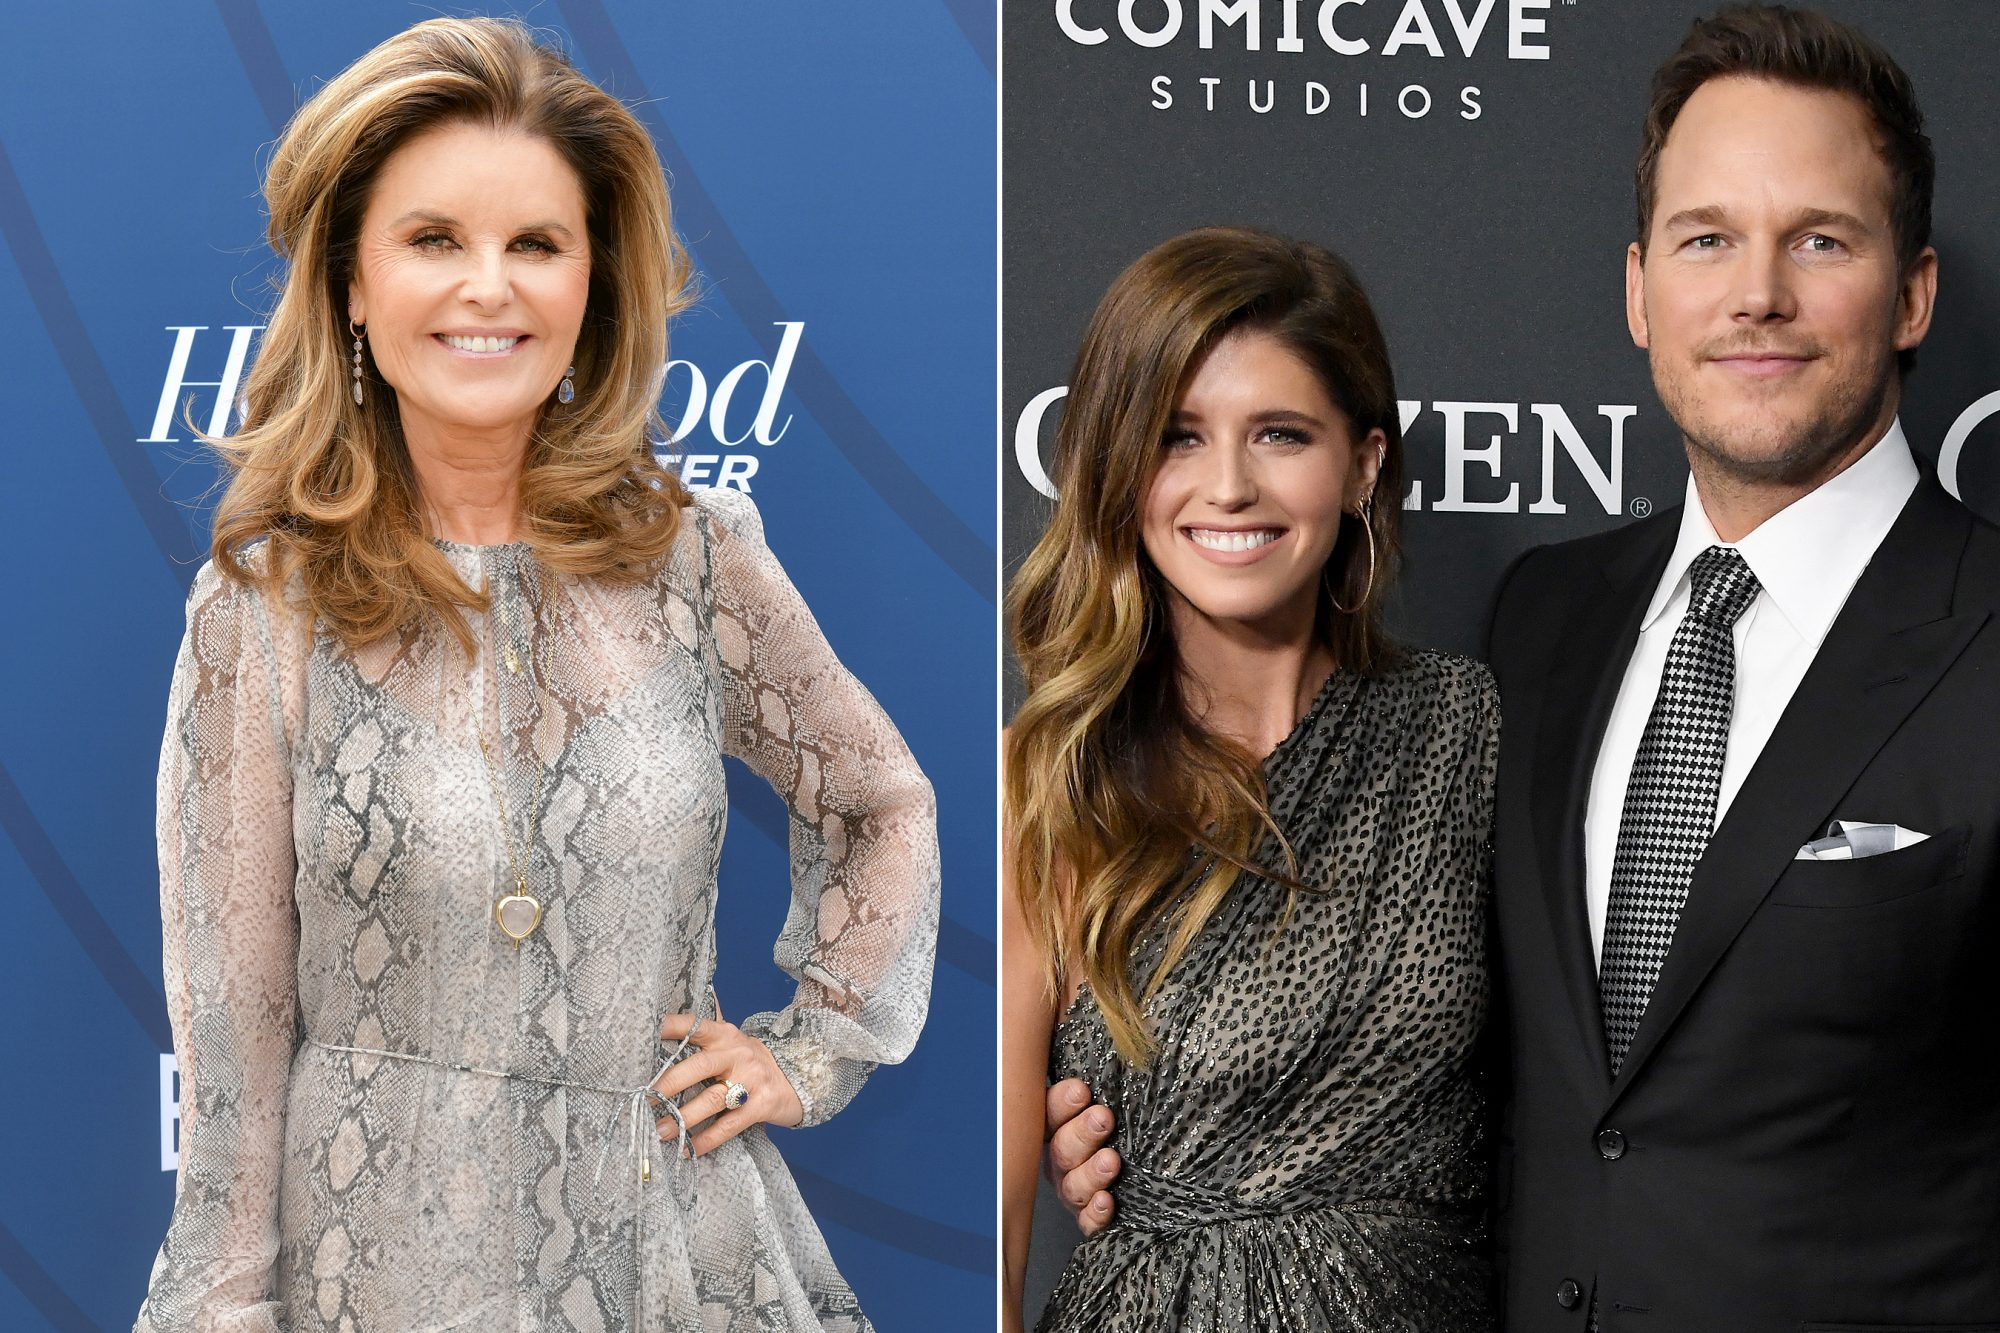 Maria Shriver, Katherine Schwarzenegger and Chris Pratt